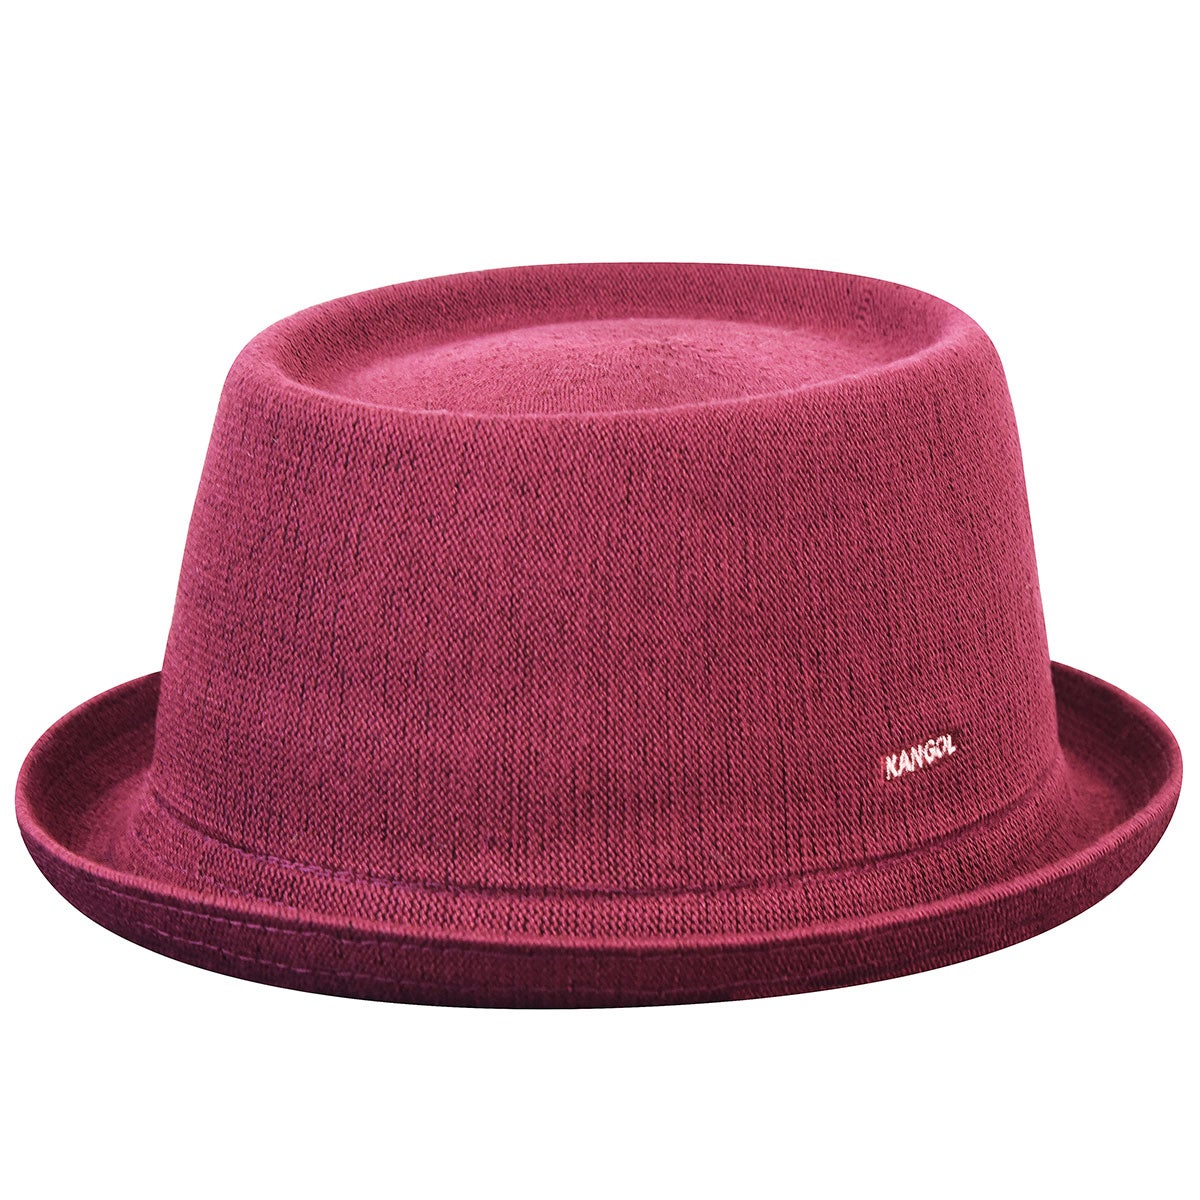 Men's Vintage Style Hats, Retro Hats Bamboo Mowbray $48.00 AT vintagedancer.com